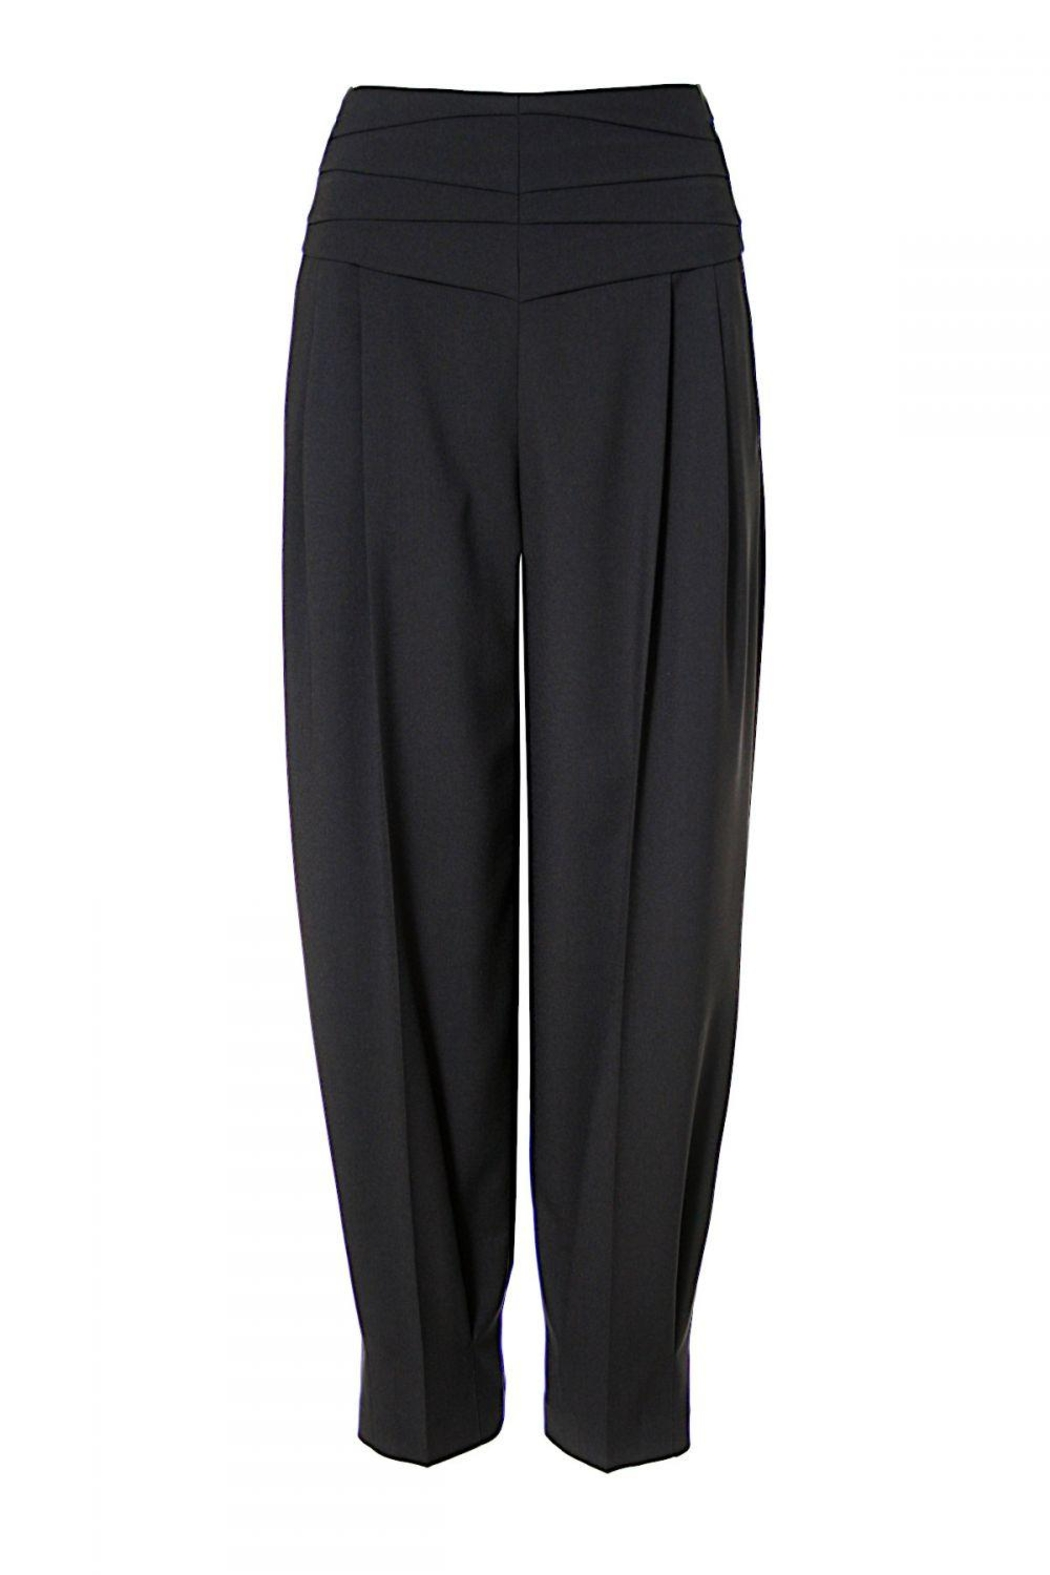 AGGI Trousers Bianca Neutral Black - Front Full Image